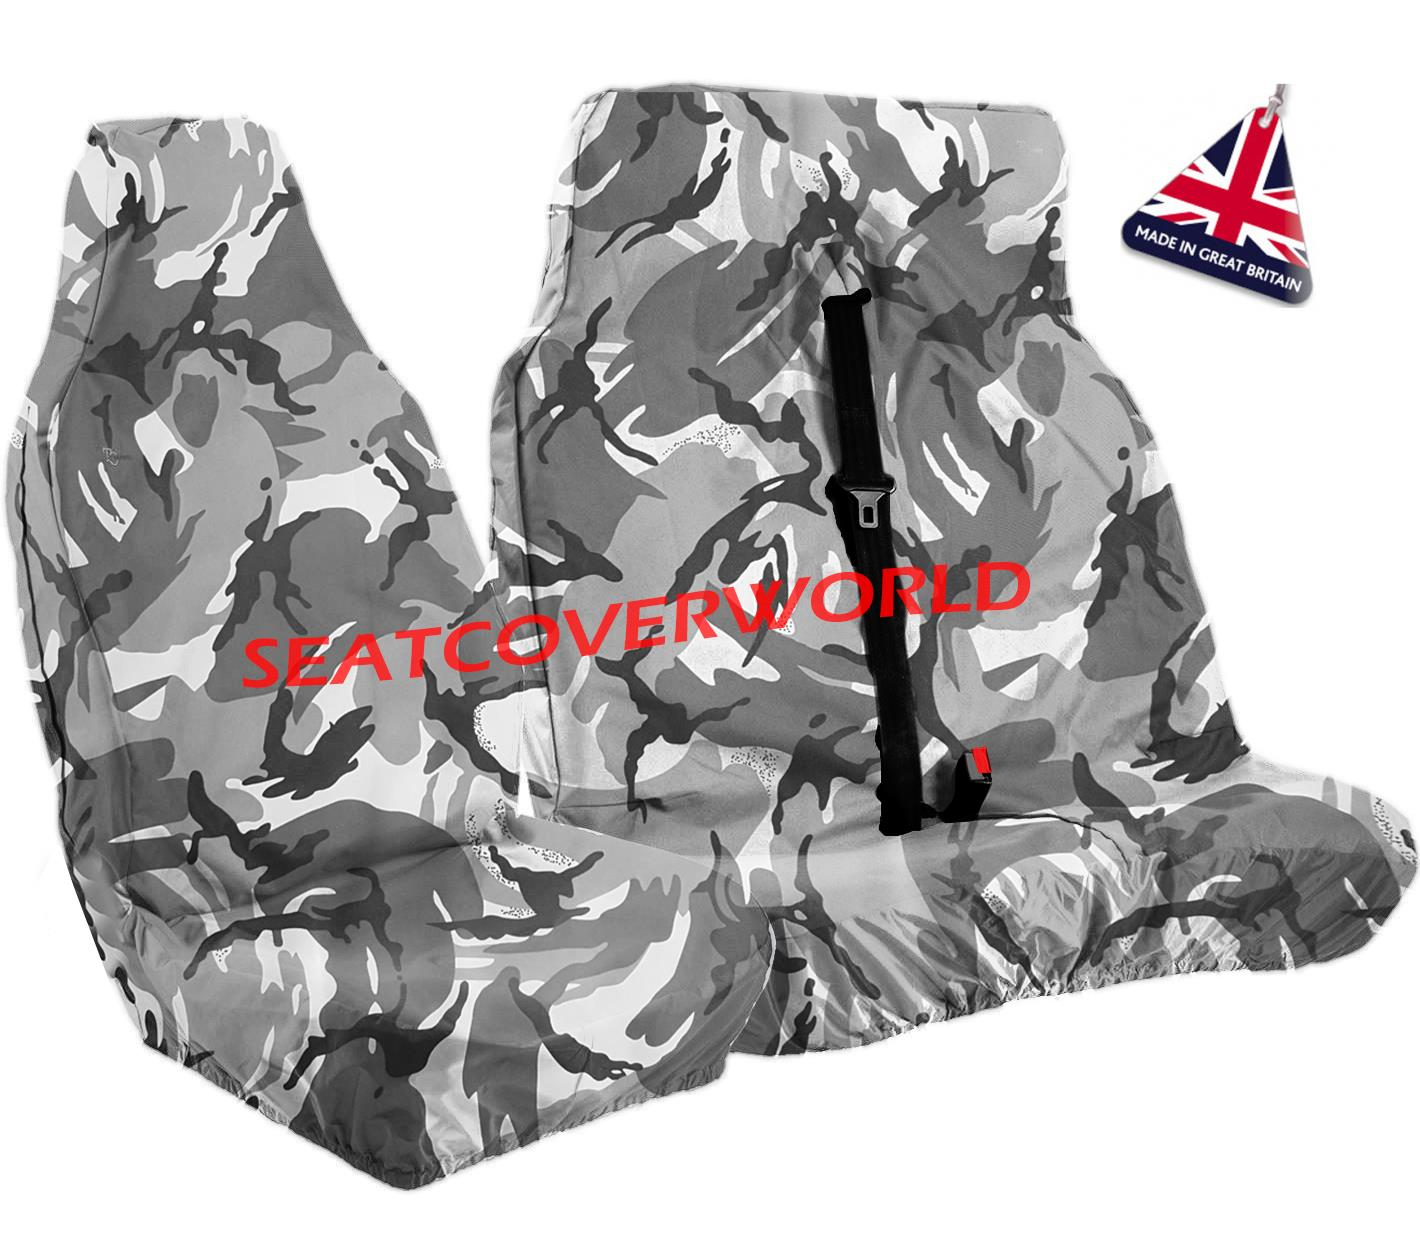 Car Seat Cover Uk Ltd Halifax